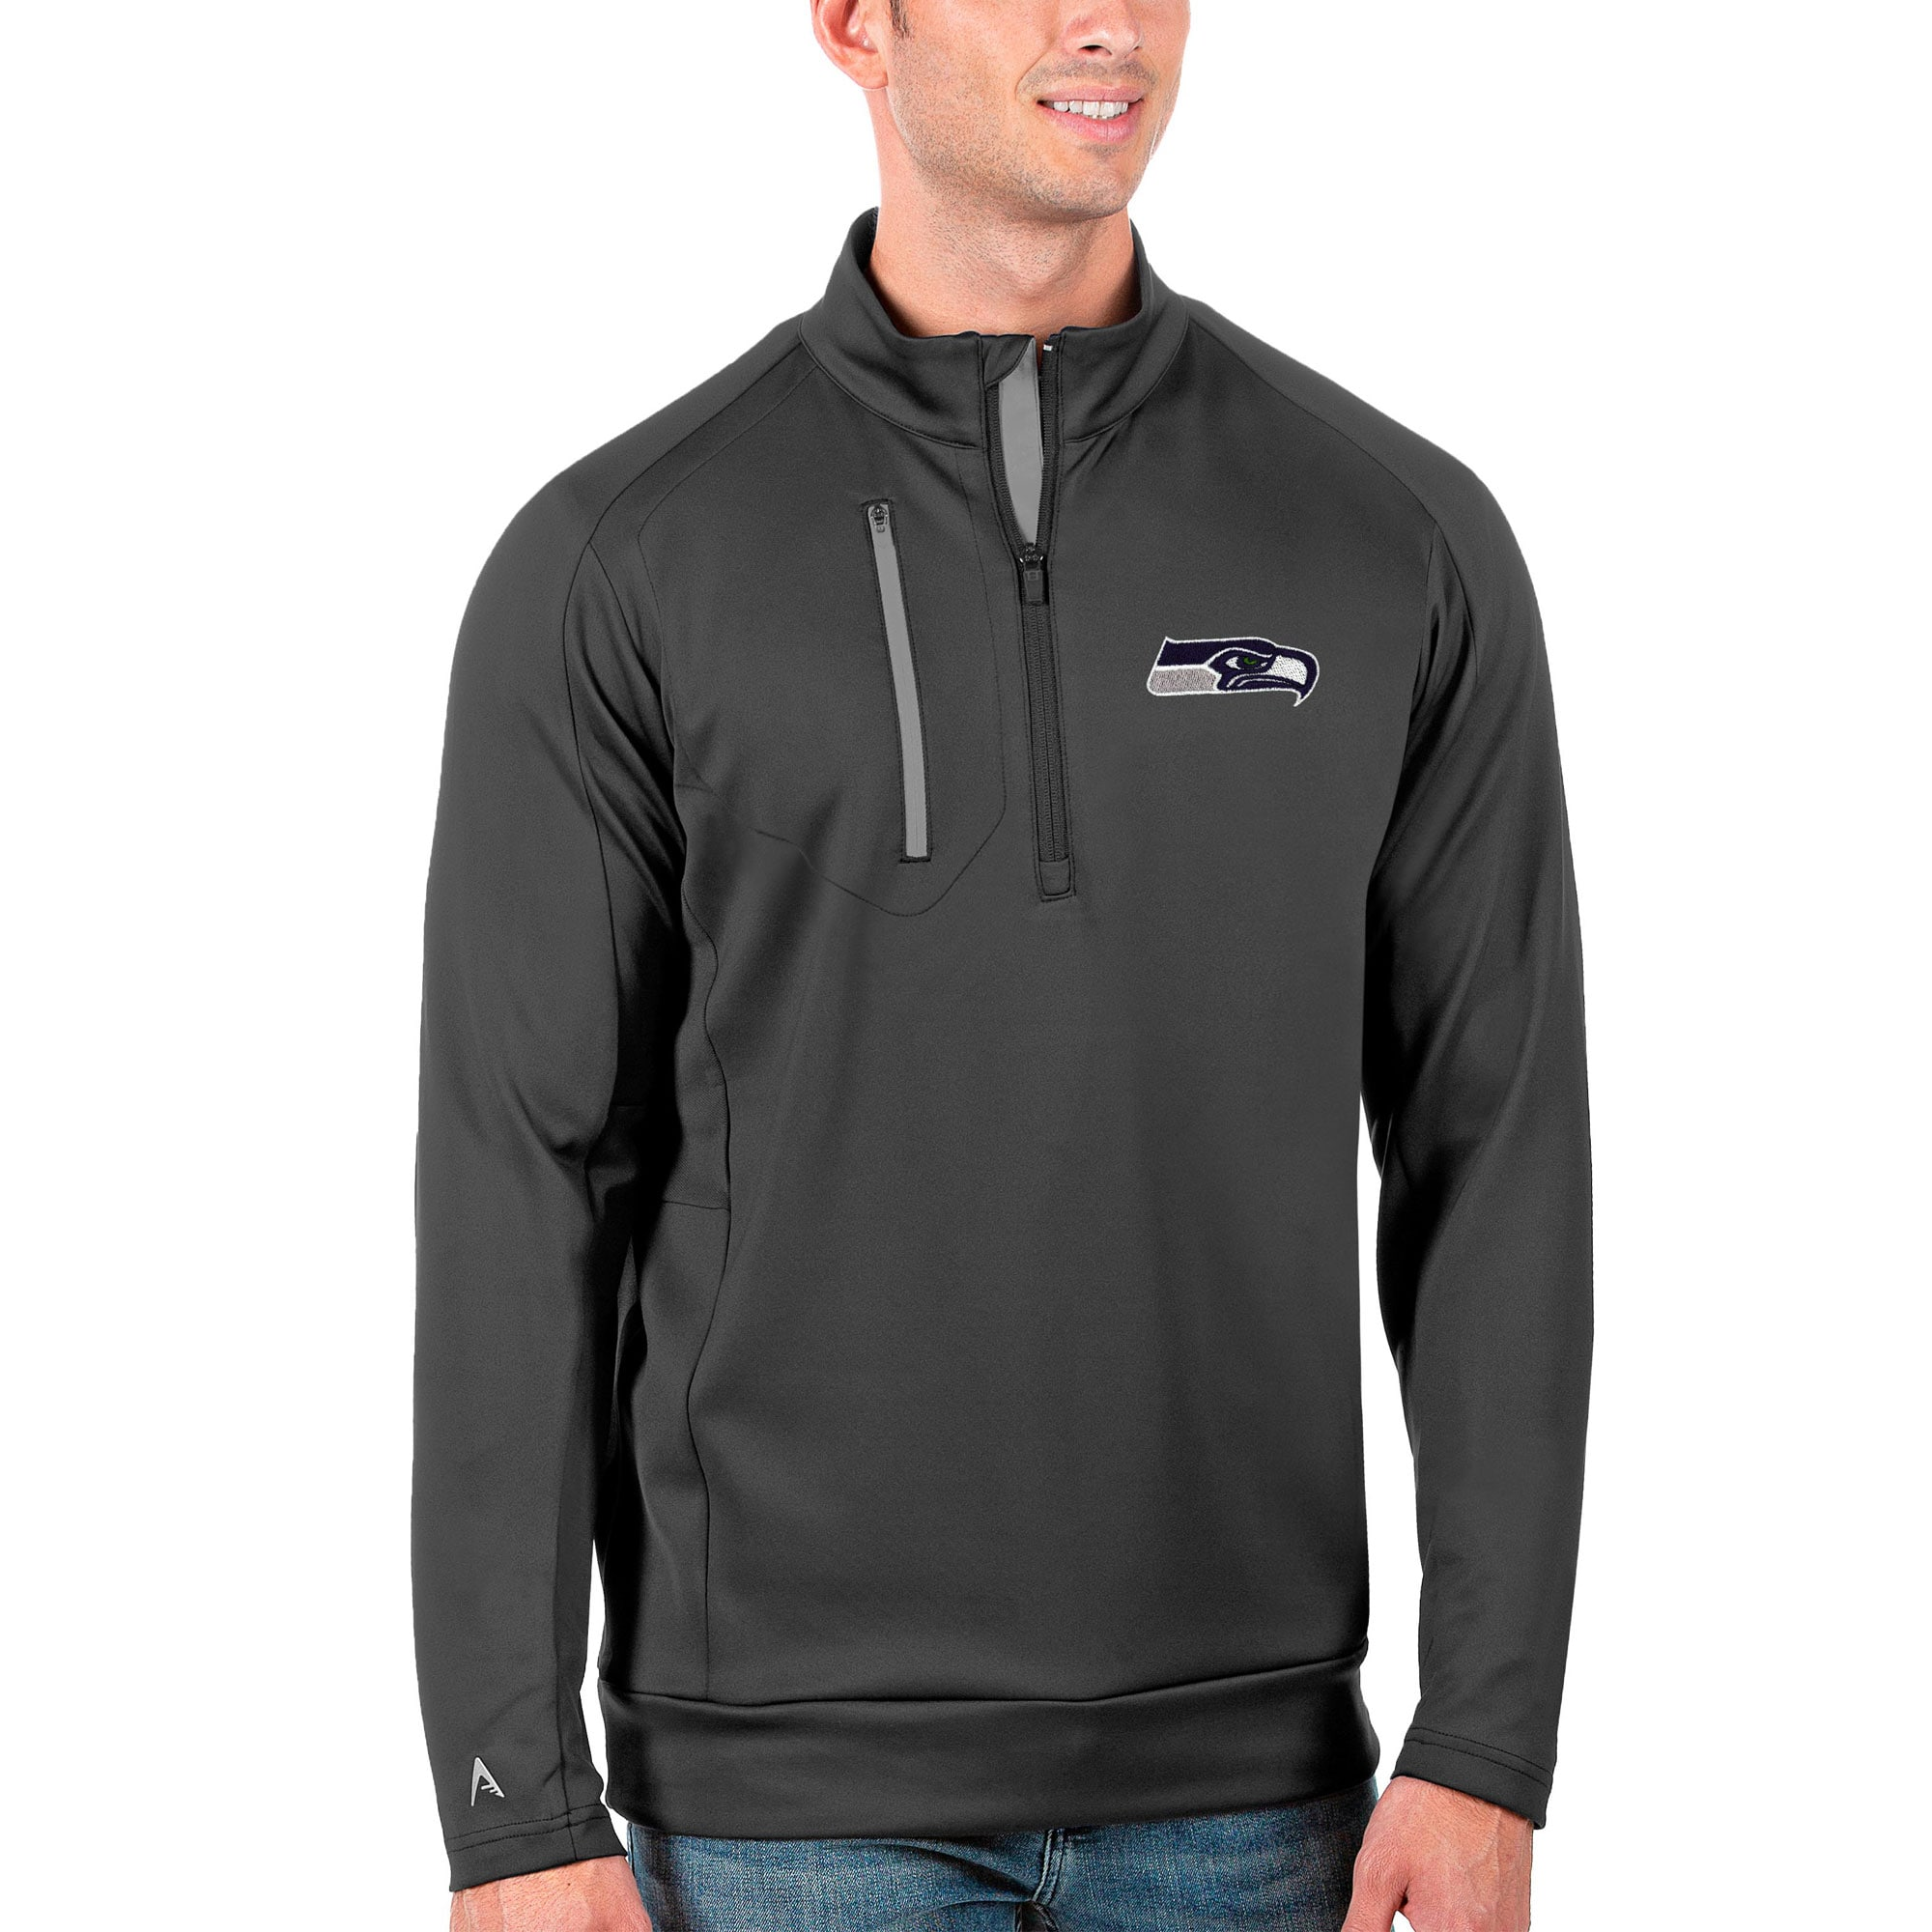 Seattle Seahawks Antigua Generation Quarter-Zip Pullover Jacket - Charcoal/Silver